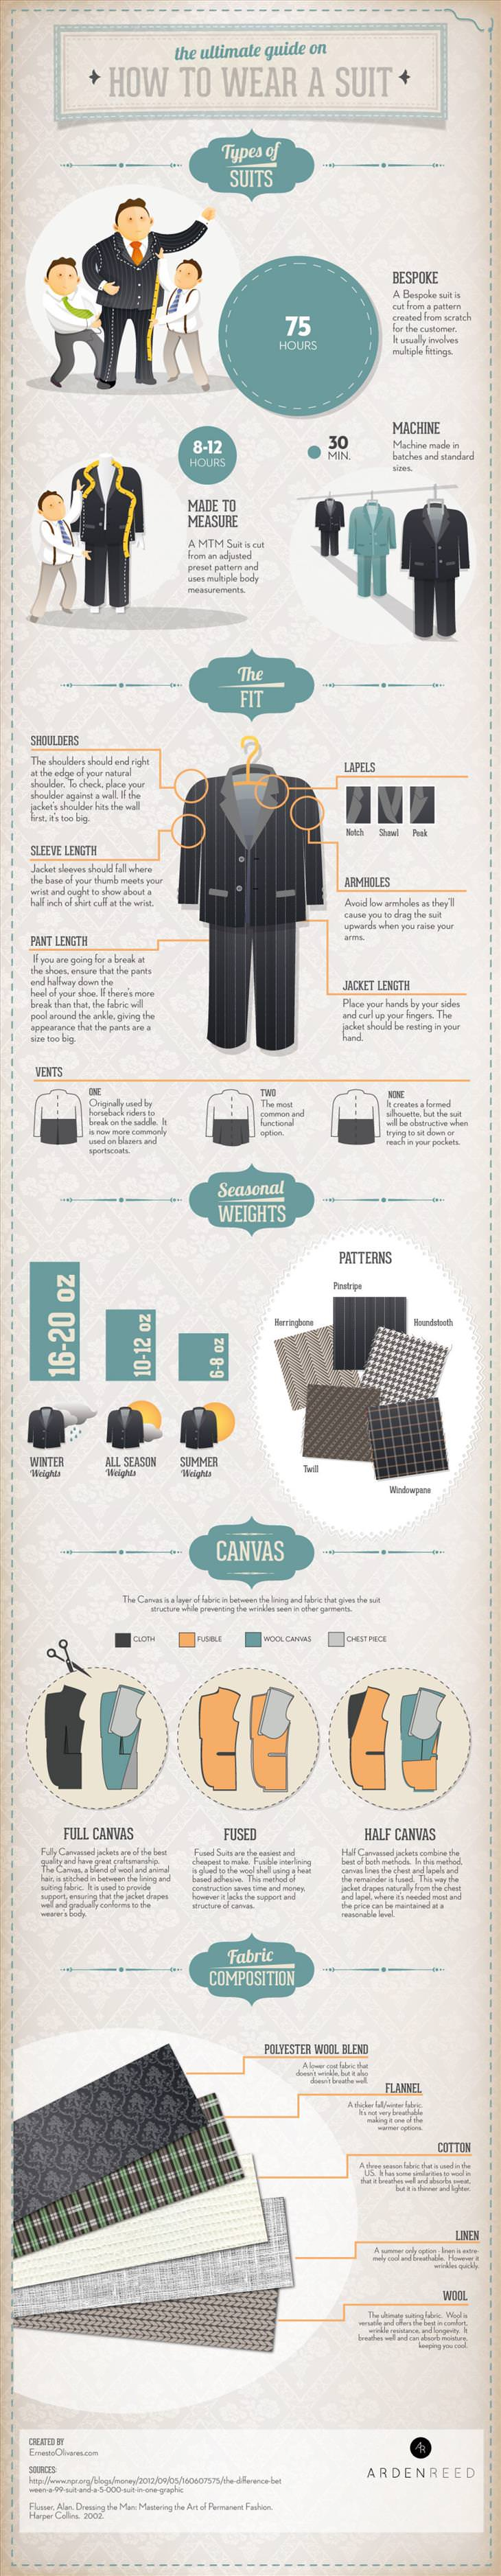 wearing a suit infographic